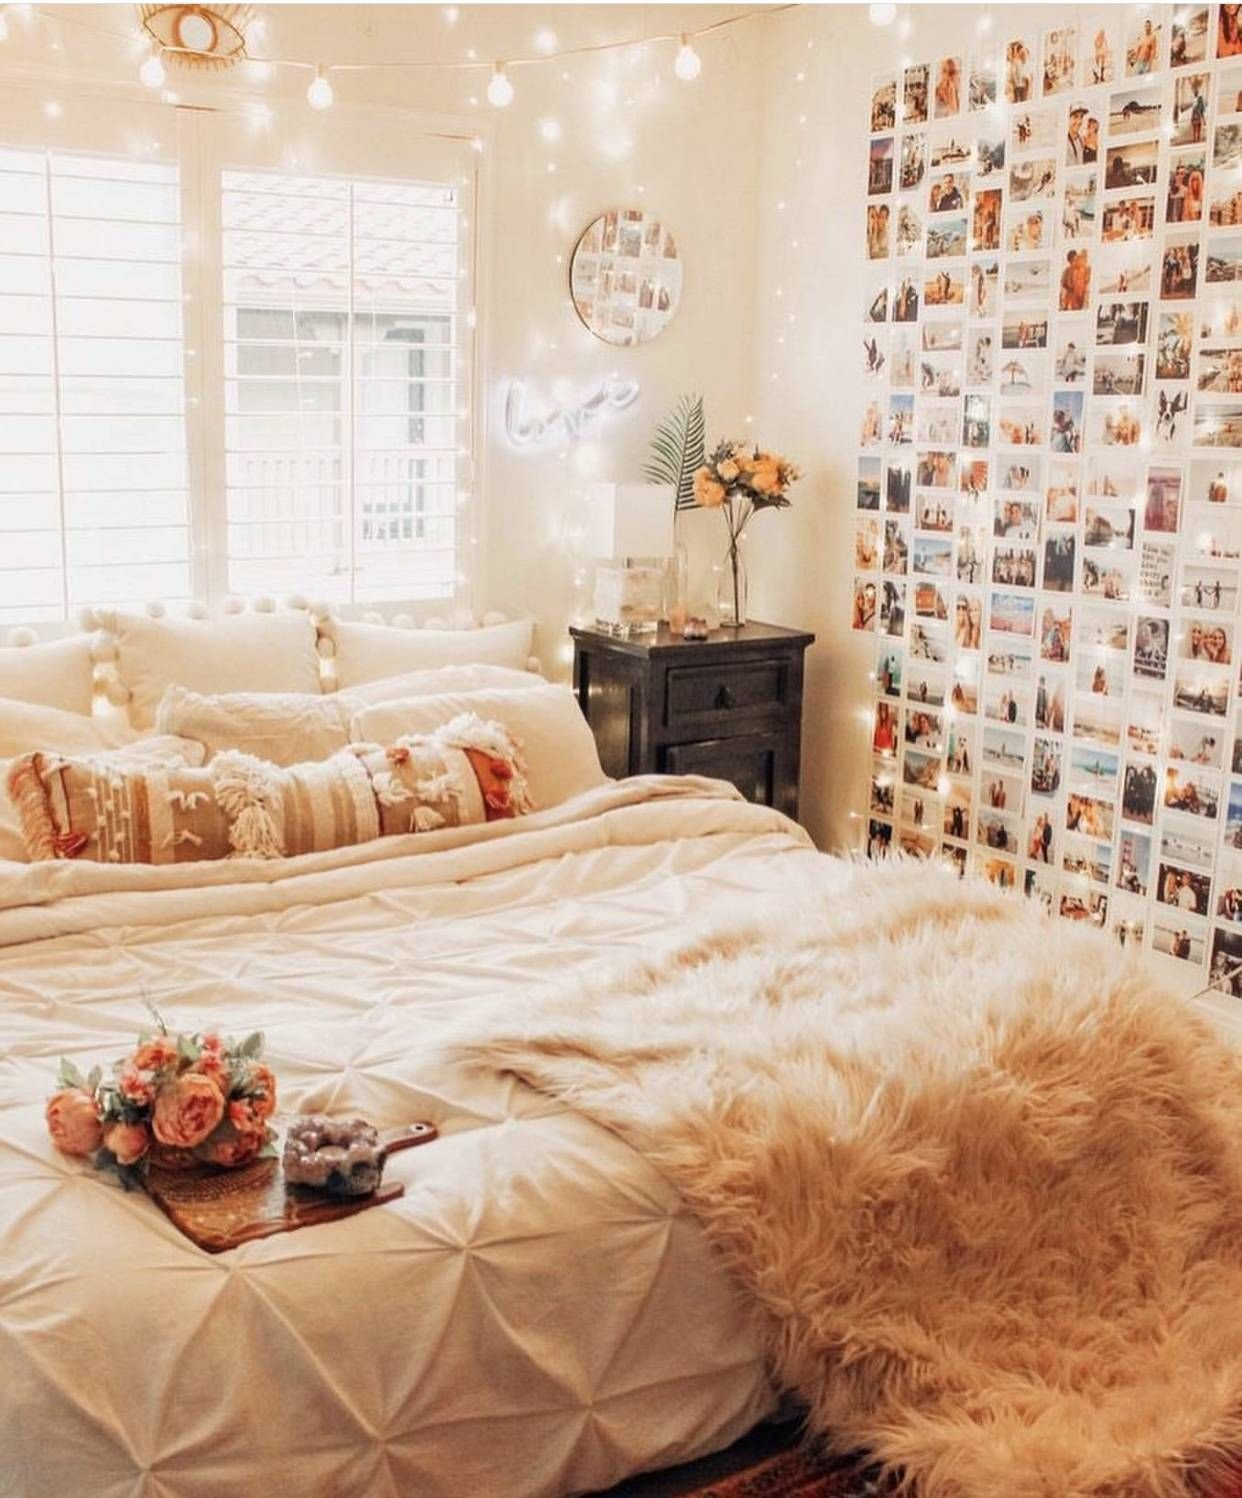 Paris themed Bedroom Ideas Best Of Vsco Decor Ideas Must Have Decor for A Vsco Room